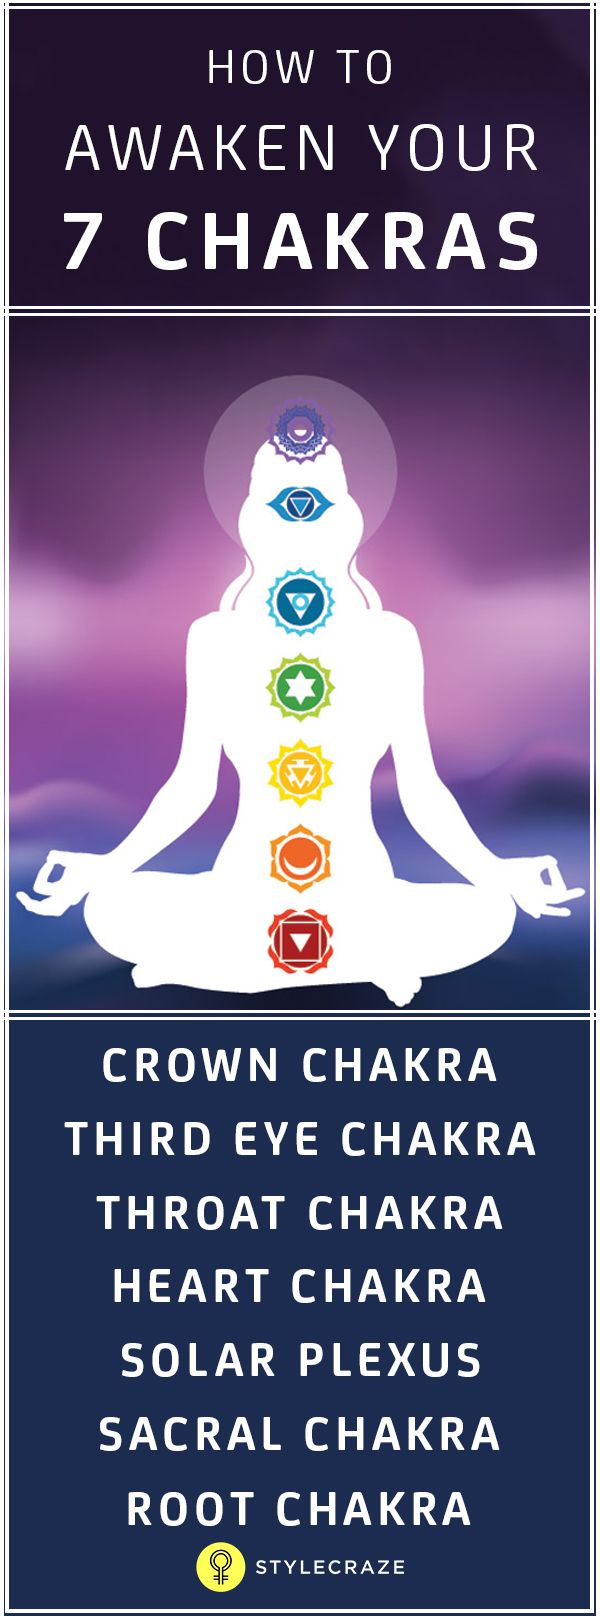 Sometimes, in the midst of our busy schedules, we might stop to take a look at our lives. Know how to open chakras by reading this post. It might be possible to do a thorough cleanse and awaken your chakras to feel energized, refreshed, and healthy. After all, energy governs our life.